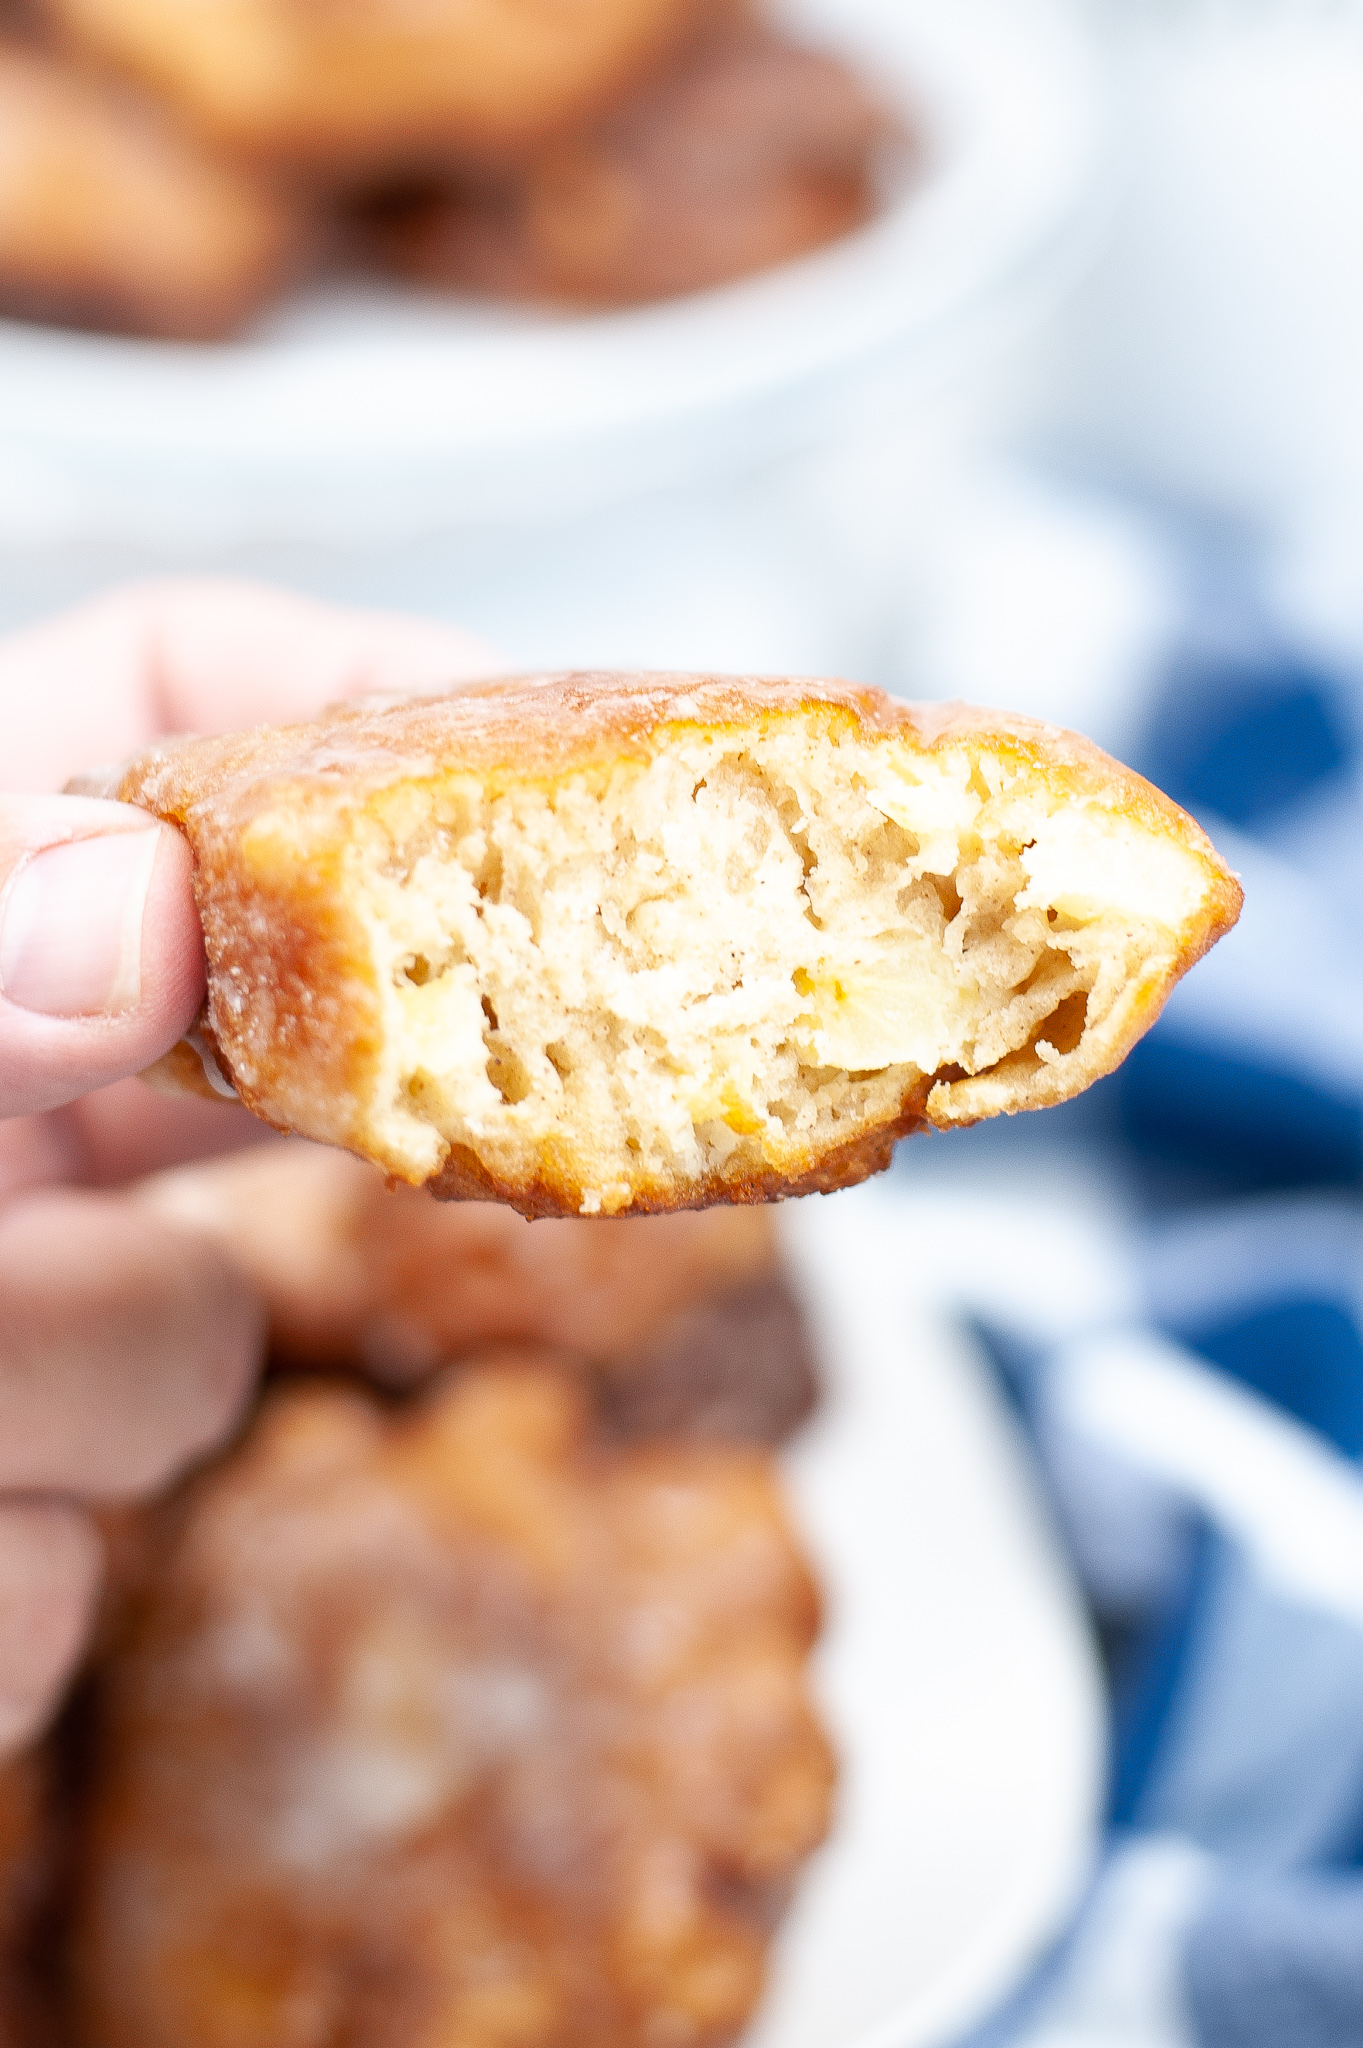 An apple fritter with a bite taken out in close up.